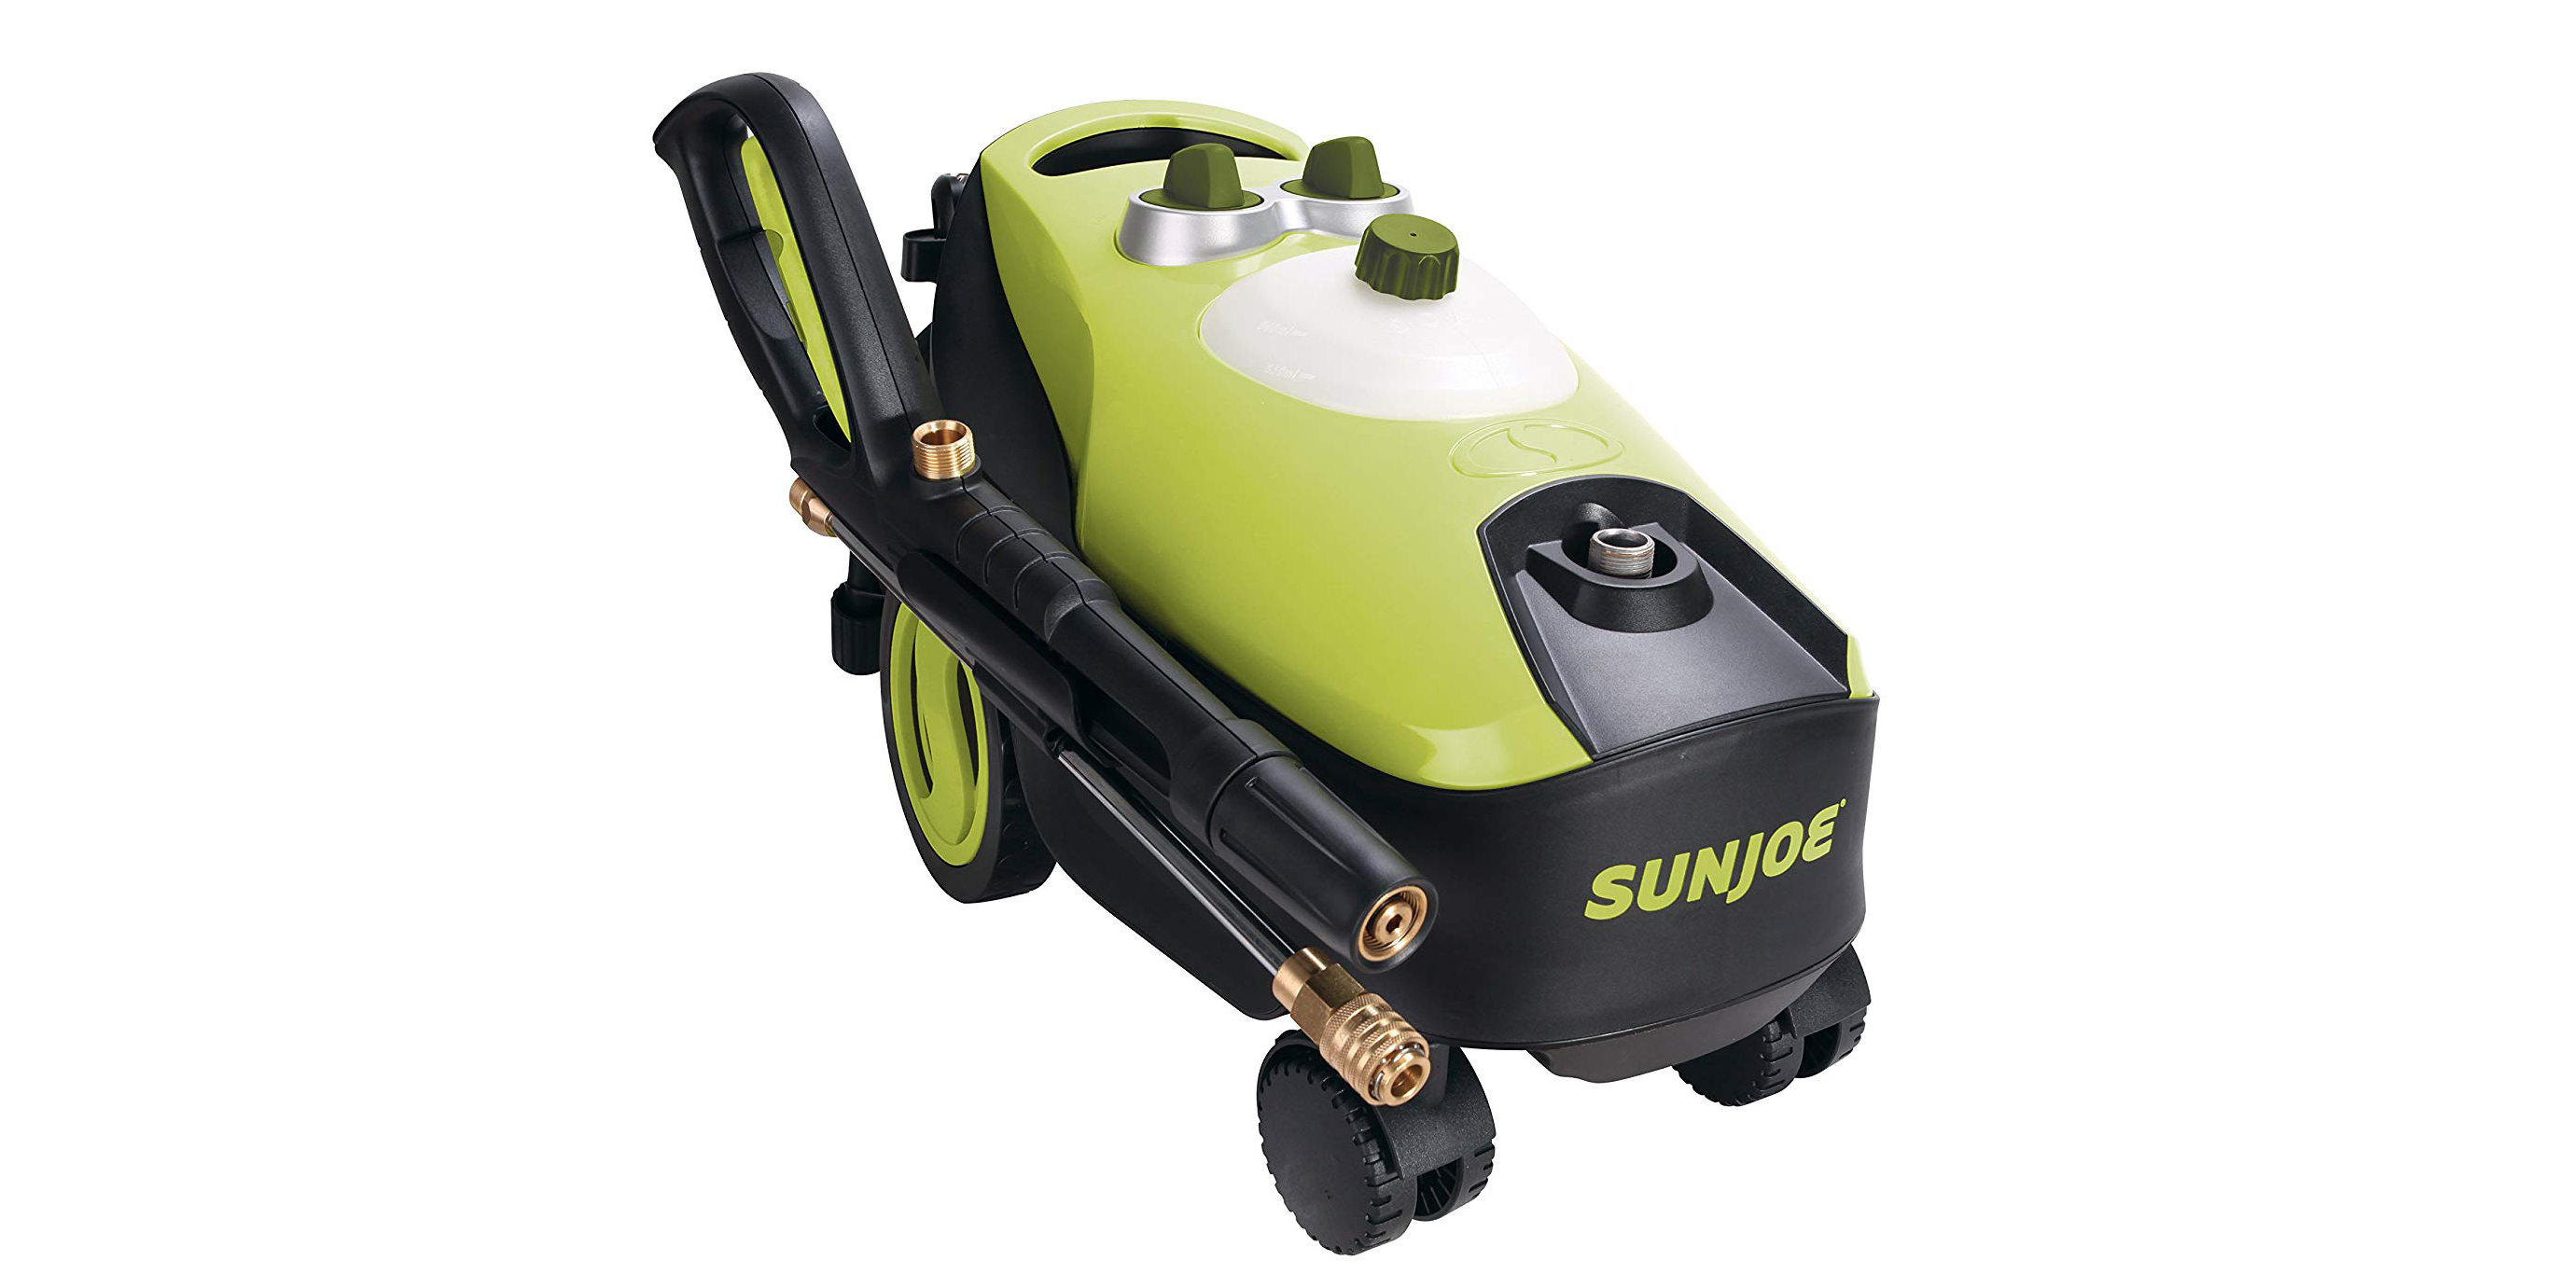 Wednesday's best Green Deals: Sun Joe Electric Pressure Washer $120, smart sprinkler systems, more